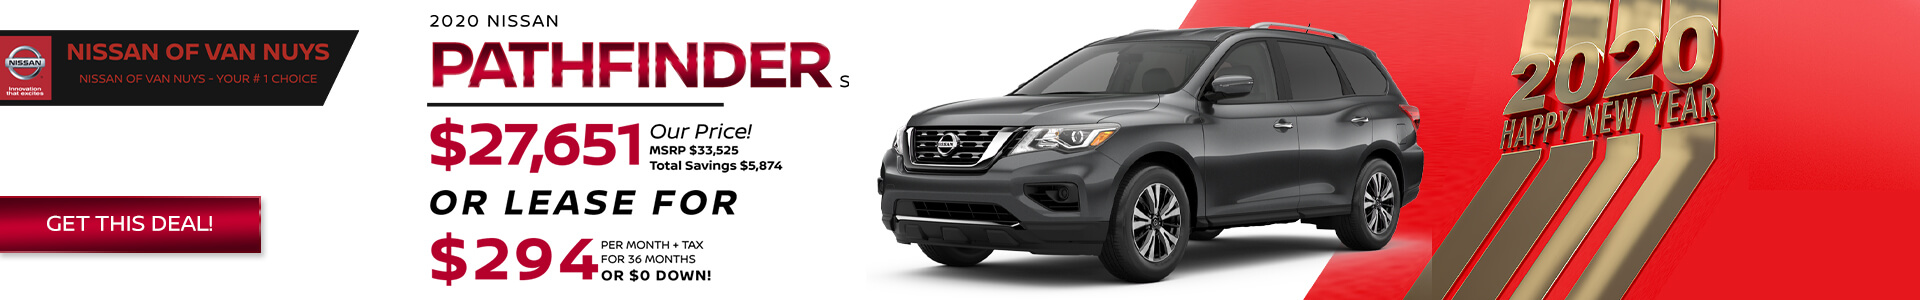 Nissan Pathfinder - Lease for $294